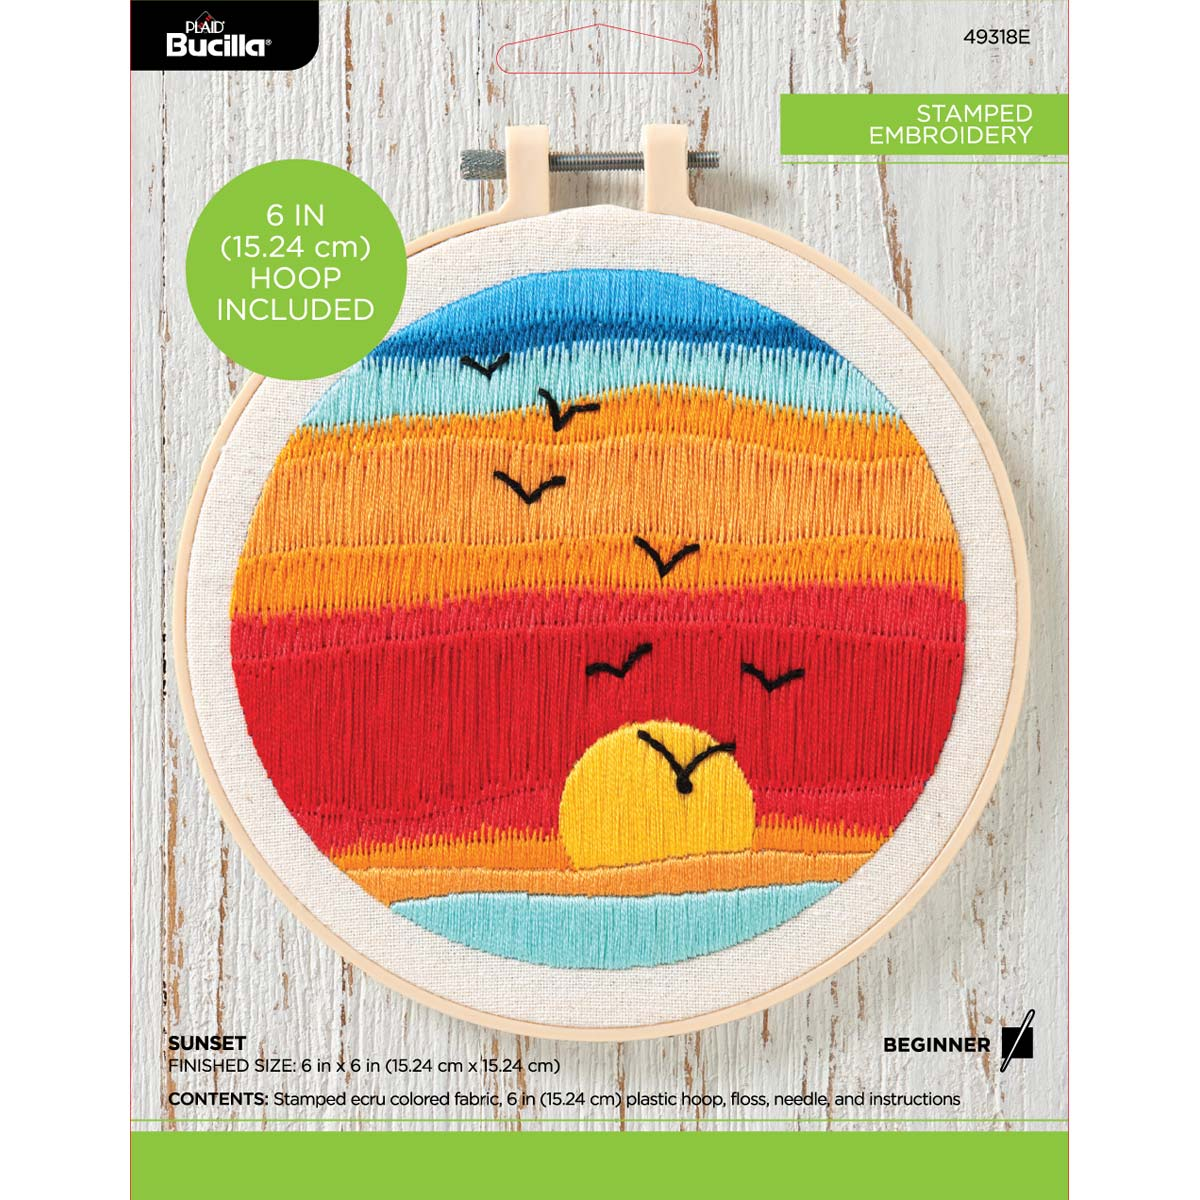 Bucilla ® Stamped Embroidery - Sunset - 49318E